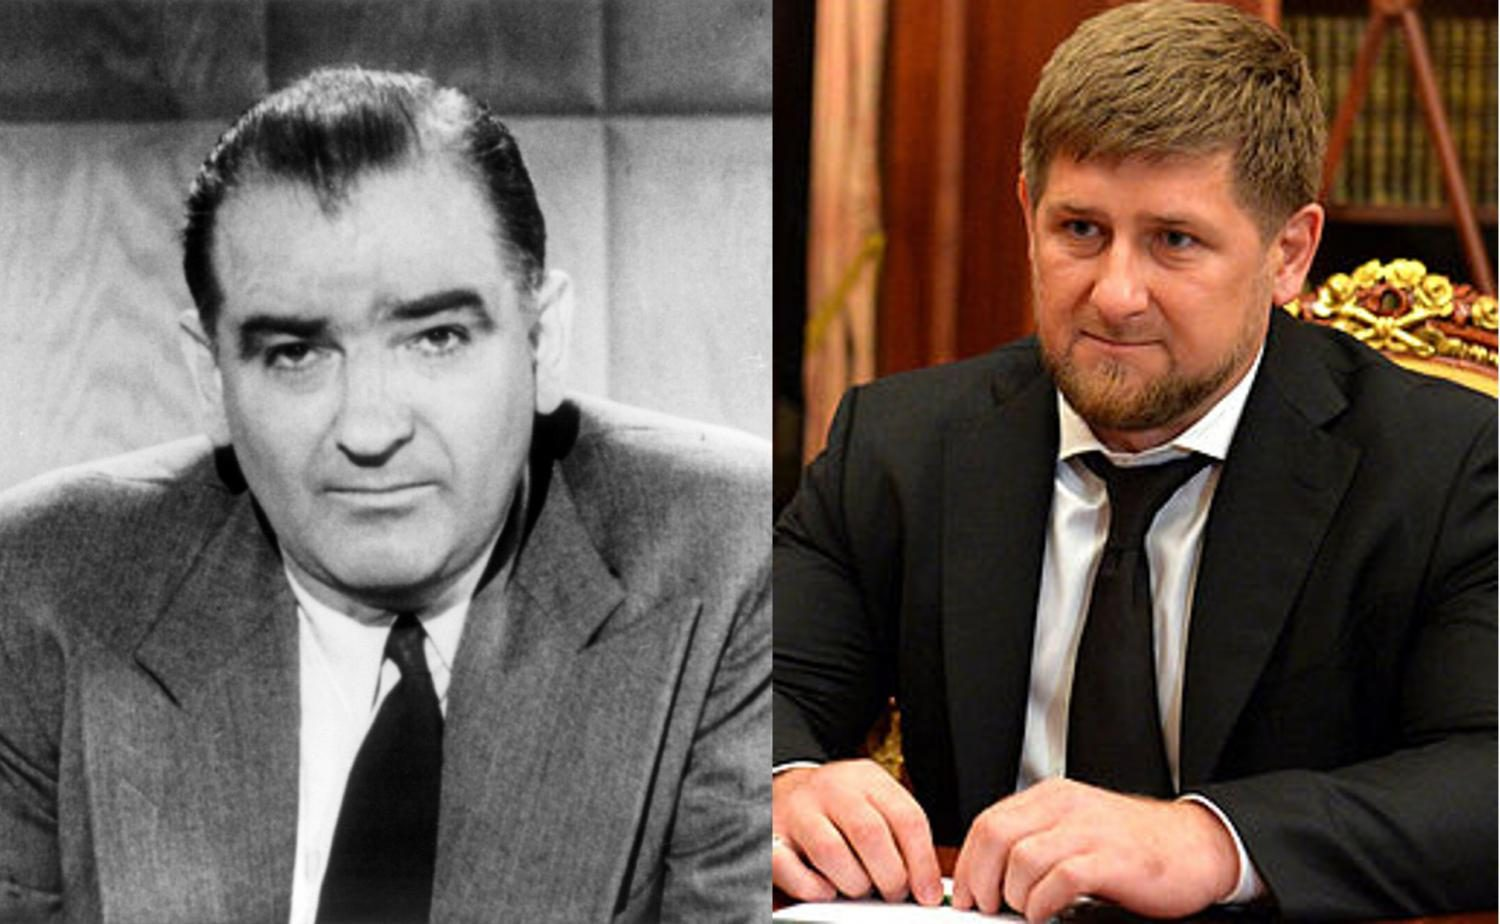 Senator+Joseph+McCarthy+%28left%29+and+Ramzan+Kadyrov%2C+Head+of+the+Chechen+Republic+%28right%29.